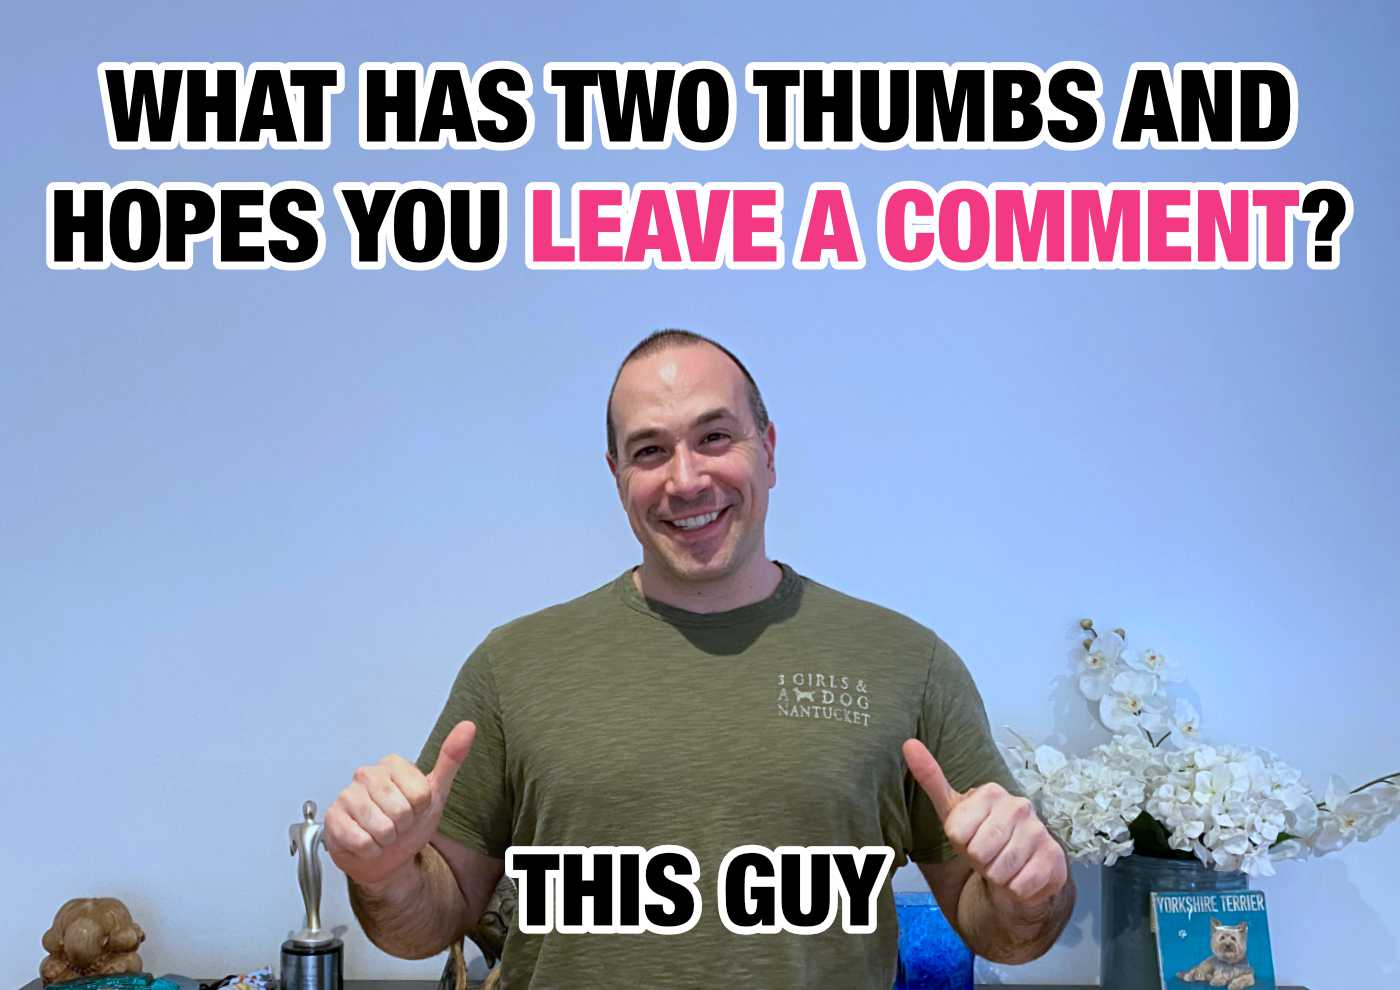 What has two thumbs and hopes you leave a comment? This Guy! (Ben Nadel).